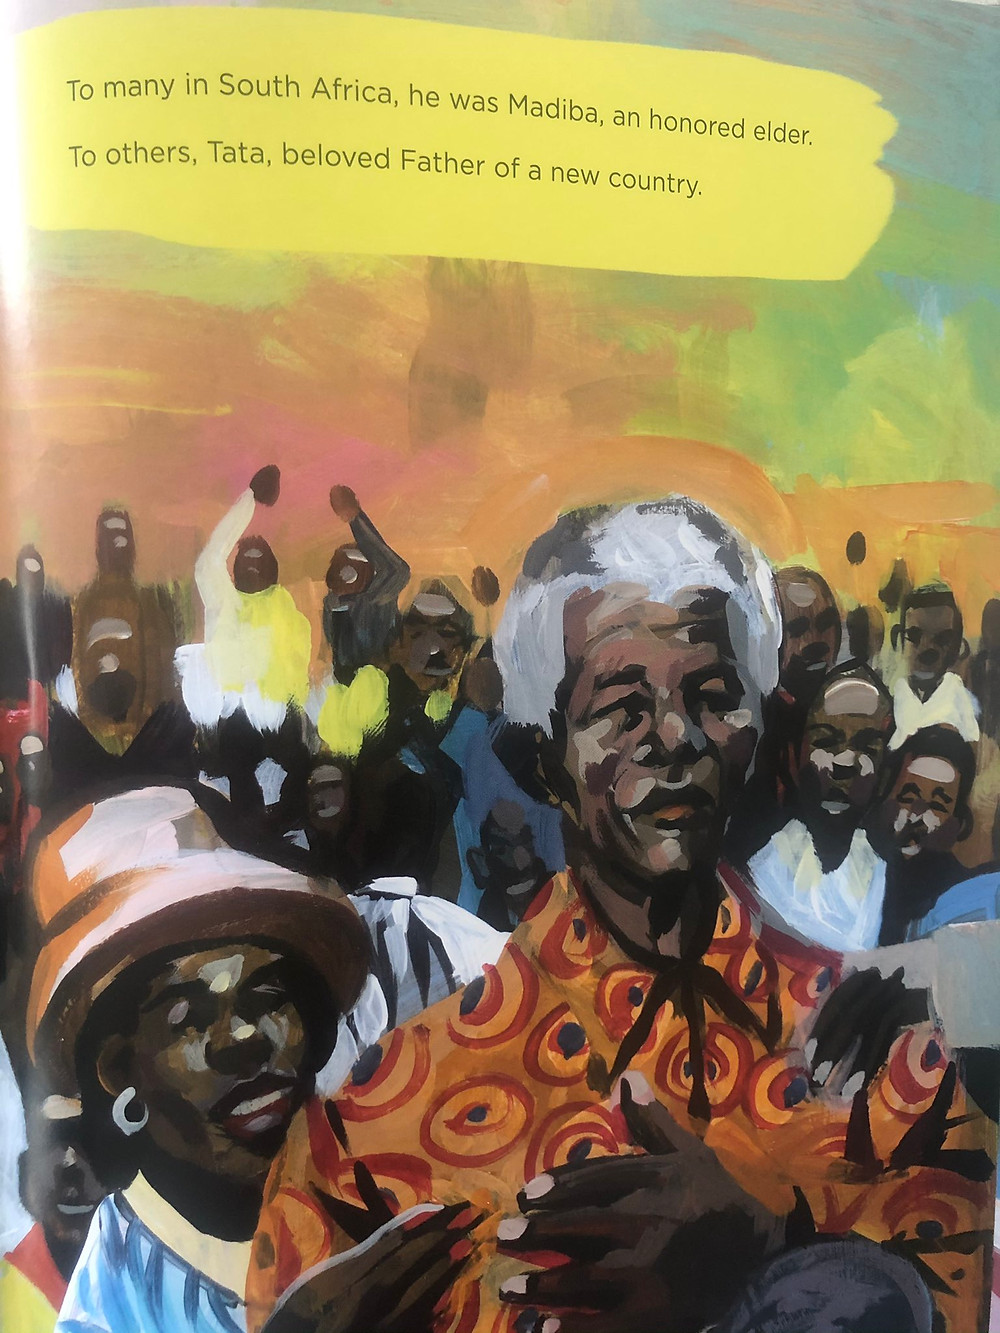 A Plan for the People: Nelson Mandela's Hope for His Nation  by Lindsey McDivitt and Charly Palmer